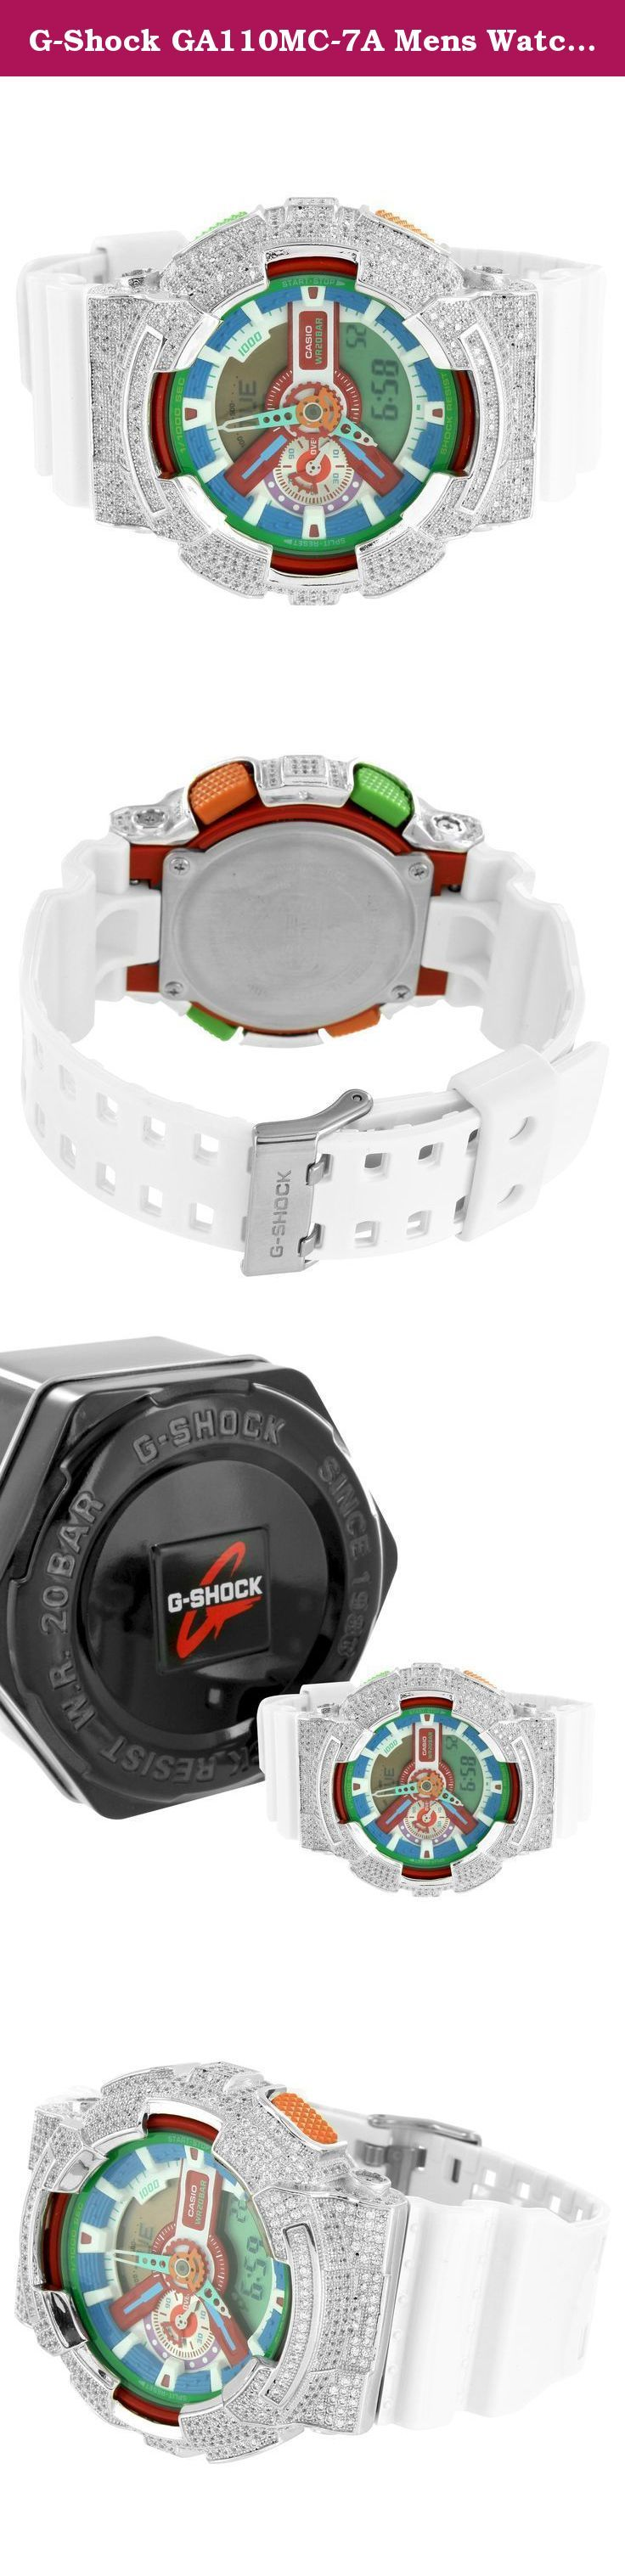 G-Shock GA110MC-7A Mens Watch Iced Out Lab Diamonds Multi Color Dial Analog-Digi. - Men's Custom G-Shock Watch Resin Band Lab Diamonds Analog-Digital display The item listed here comes with a G-shock watch box You Get FREE SHIPPING With This Purchase Sharp look at a bargain price!.